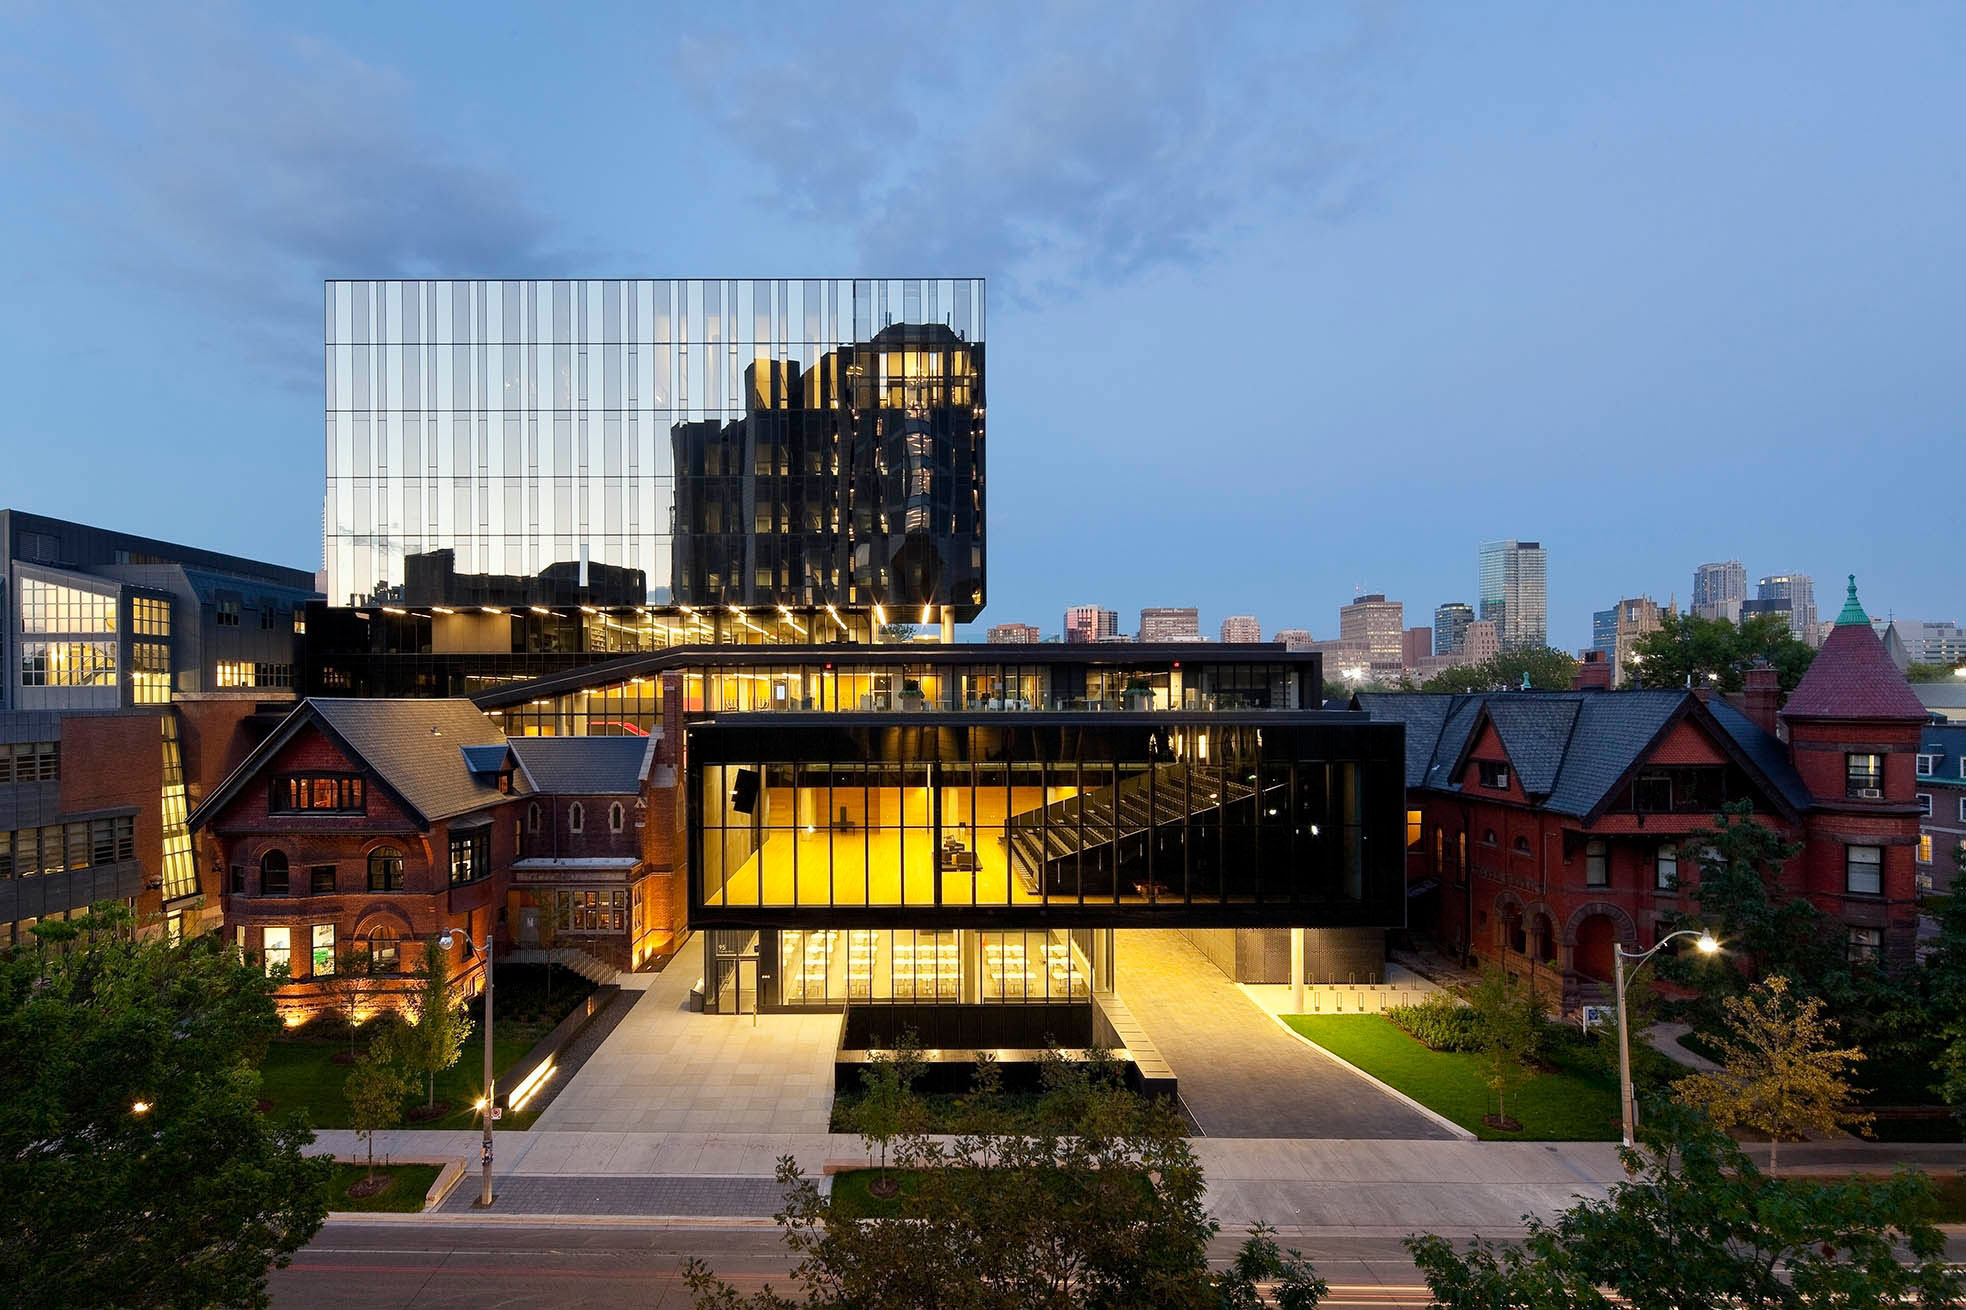 New Rotman School Expansion by KPMB interconnects contemporary building with history on University of Toronto campus. Credit: Tom Arbun Photography Inc. (CNW Group/Kuwabara Payne McKenna Blumberg Architects)